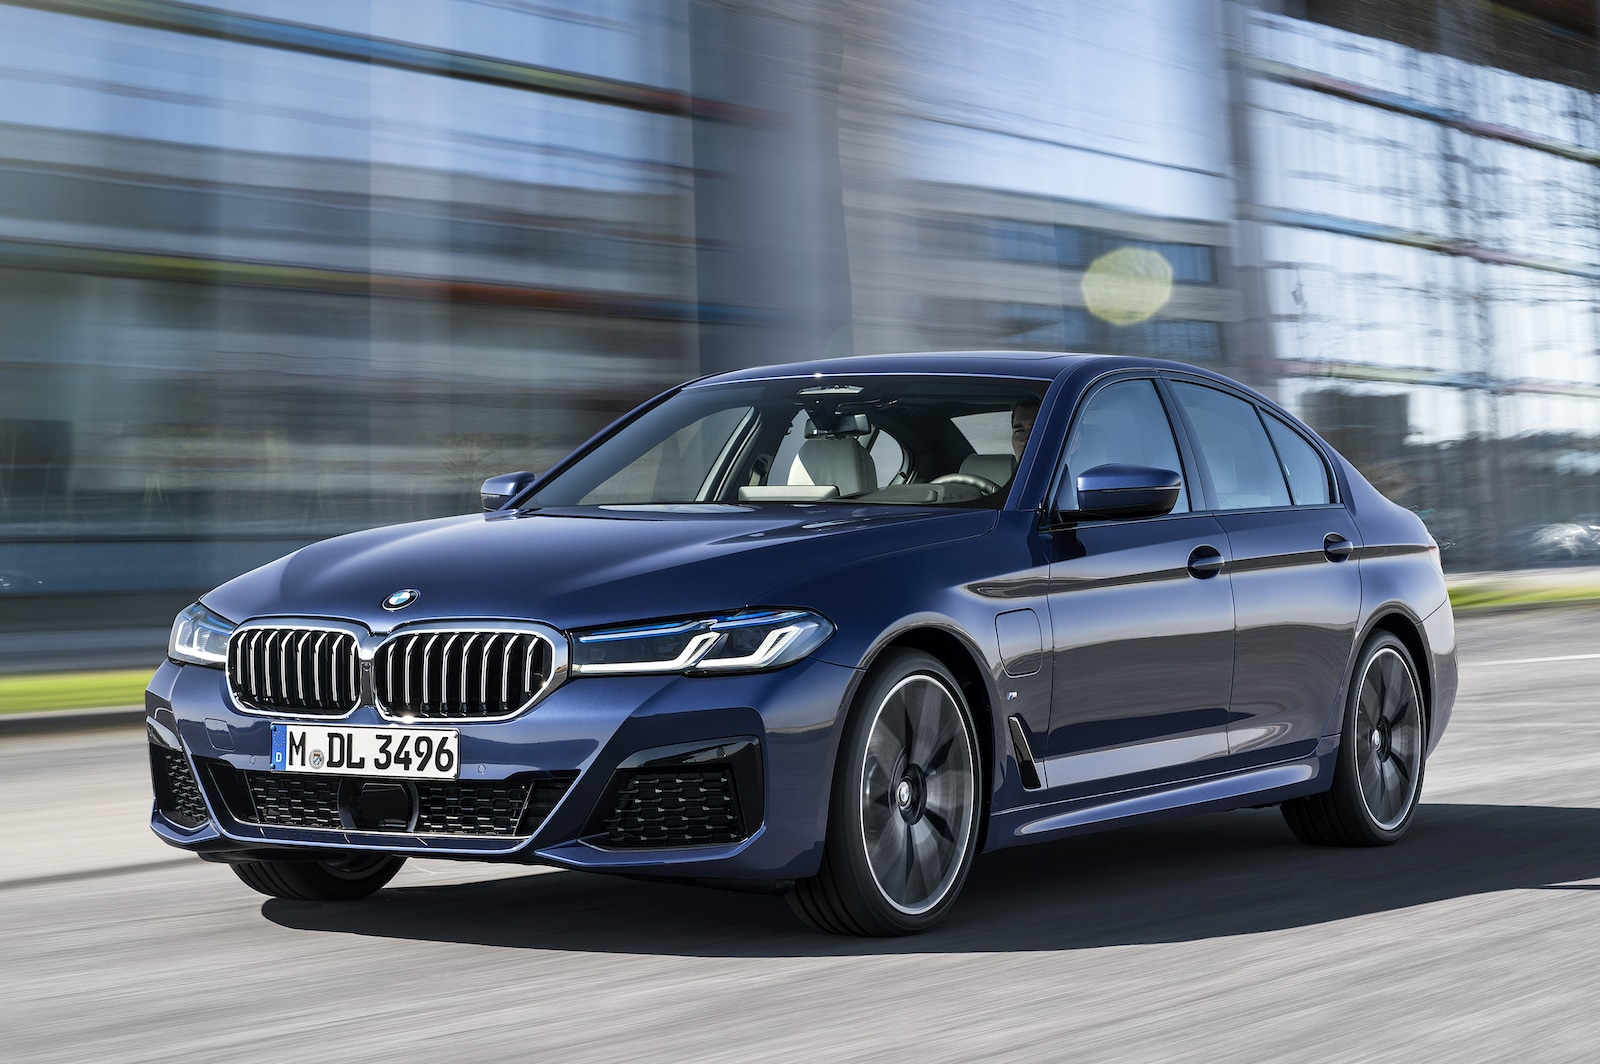 bmw keeps on truckin' with its 2021 5 series sedan